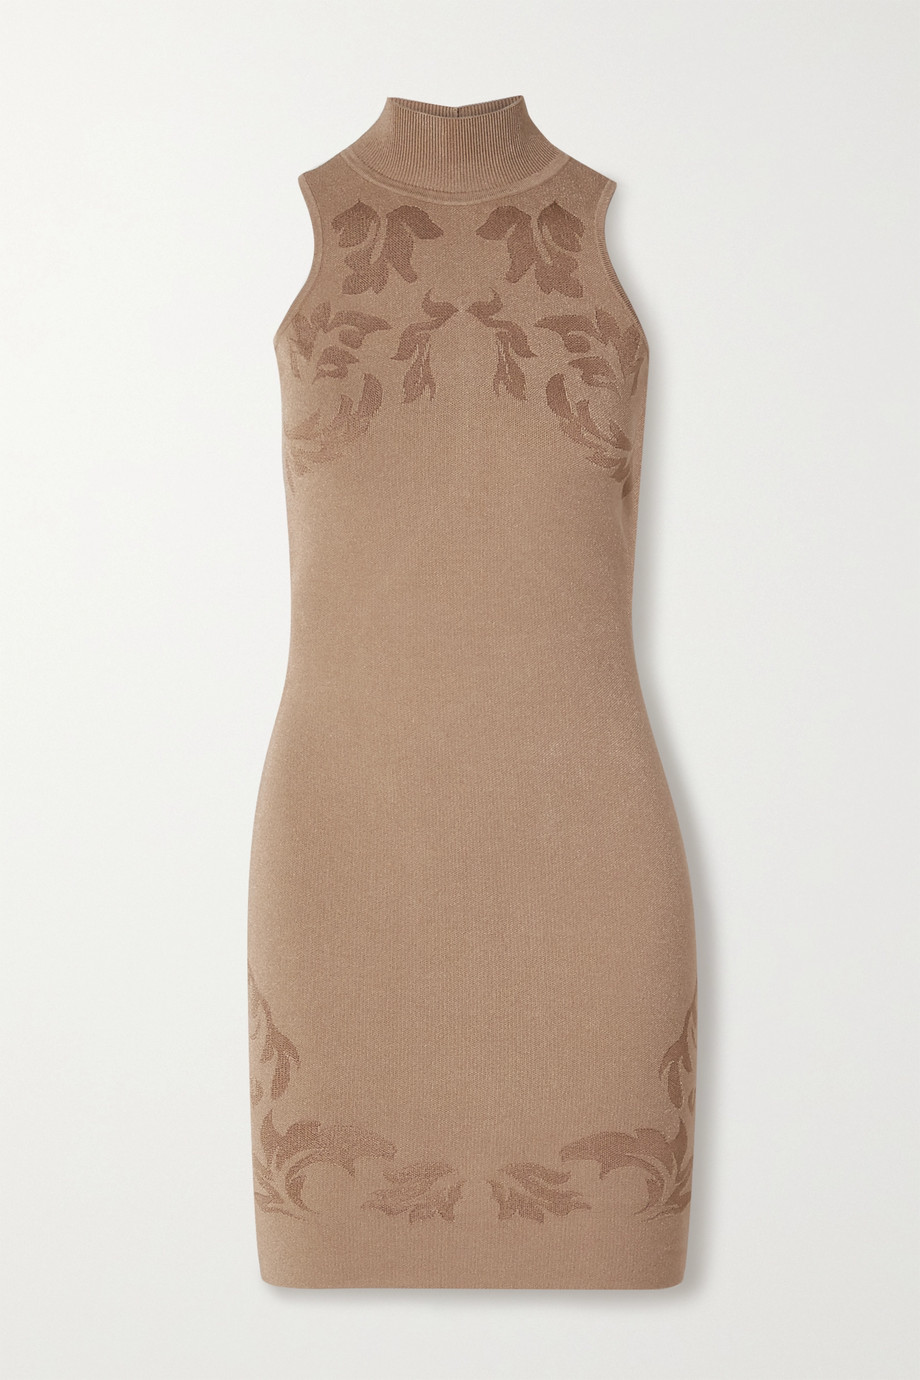 Cushnie Cutout floral jacquard-knit mini dress